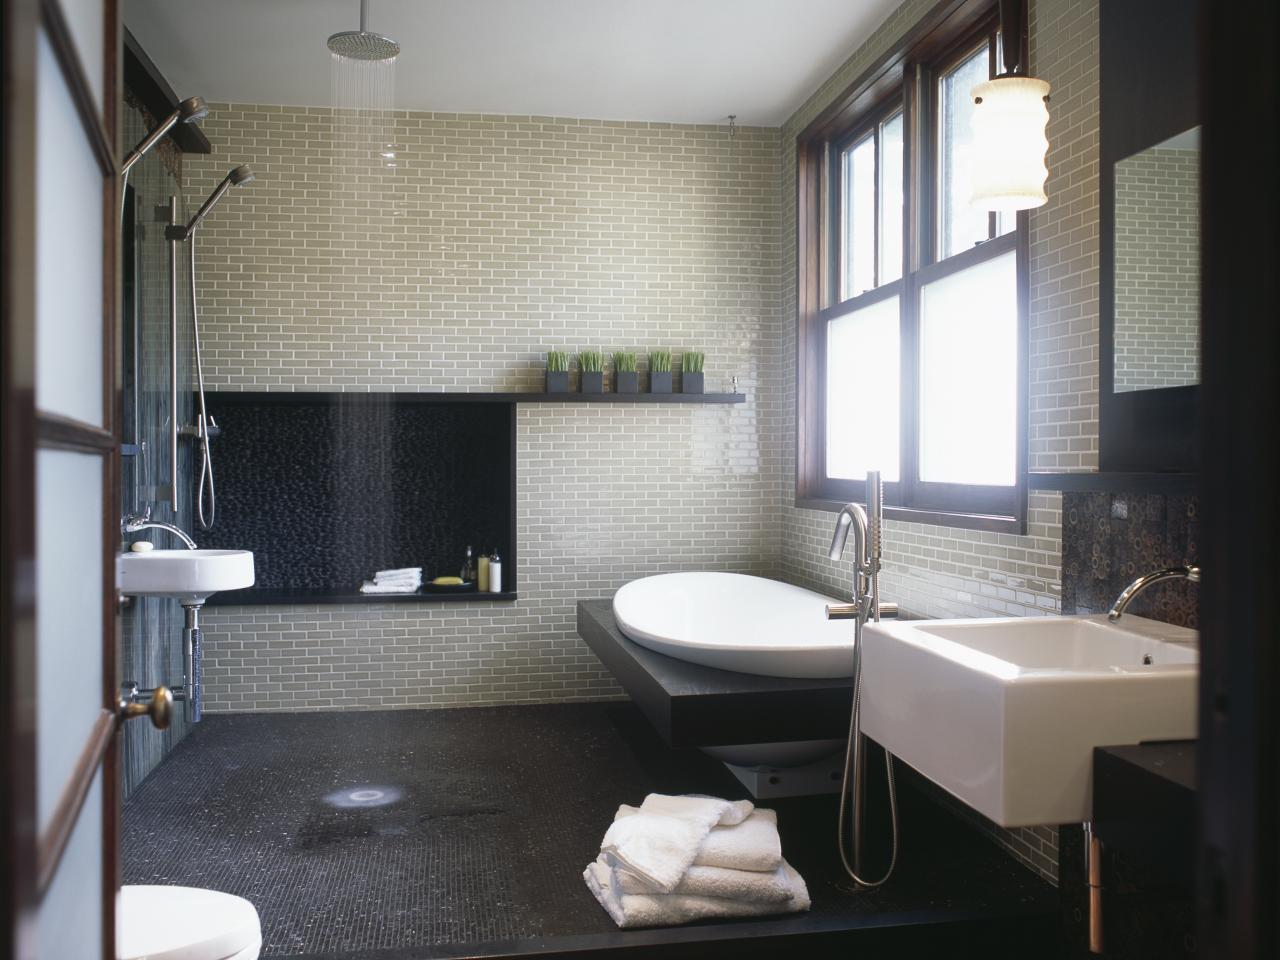 Cleaning the Bathroom Properly & Steps for Hygiene